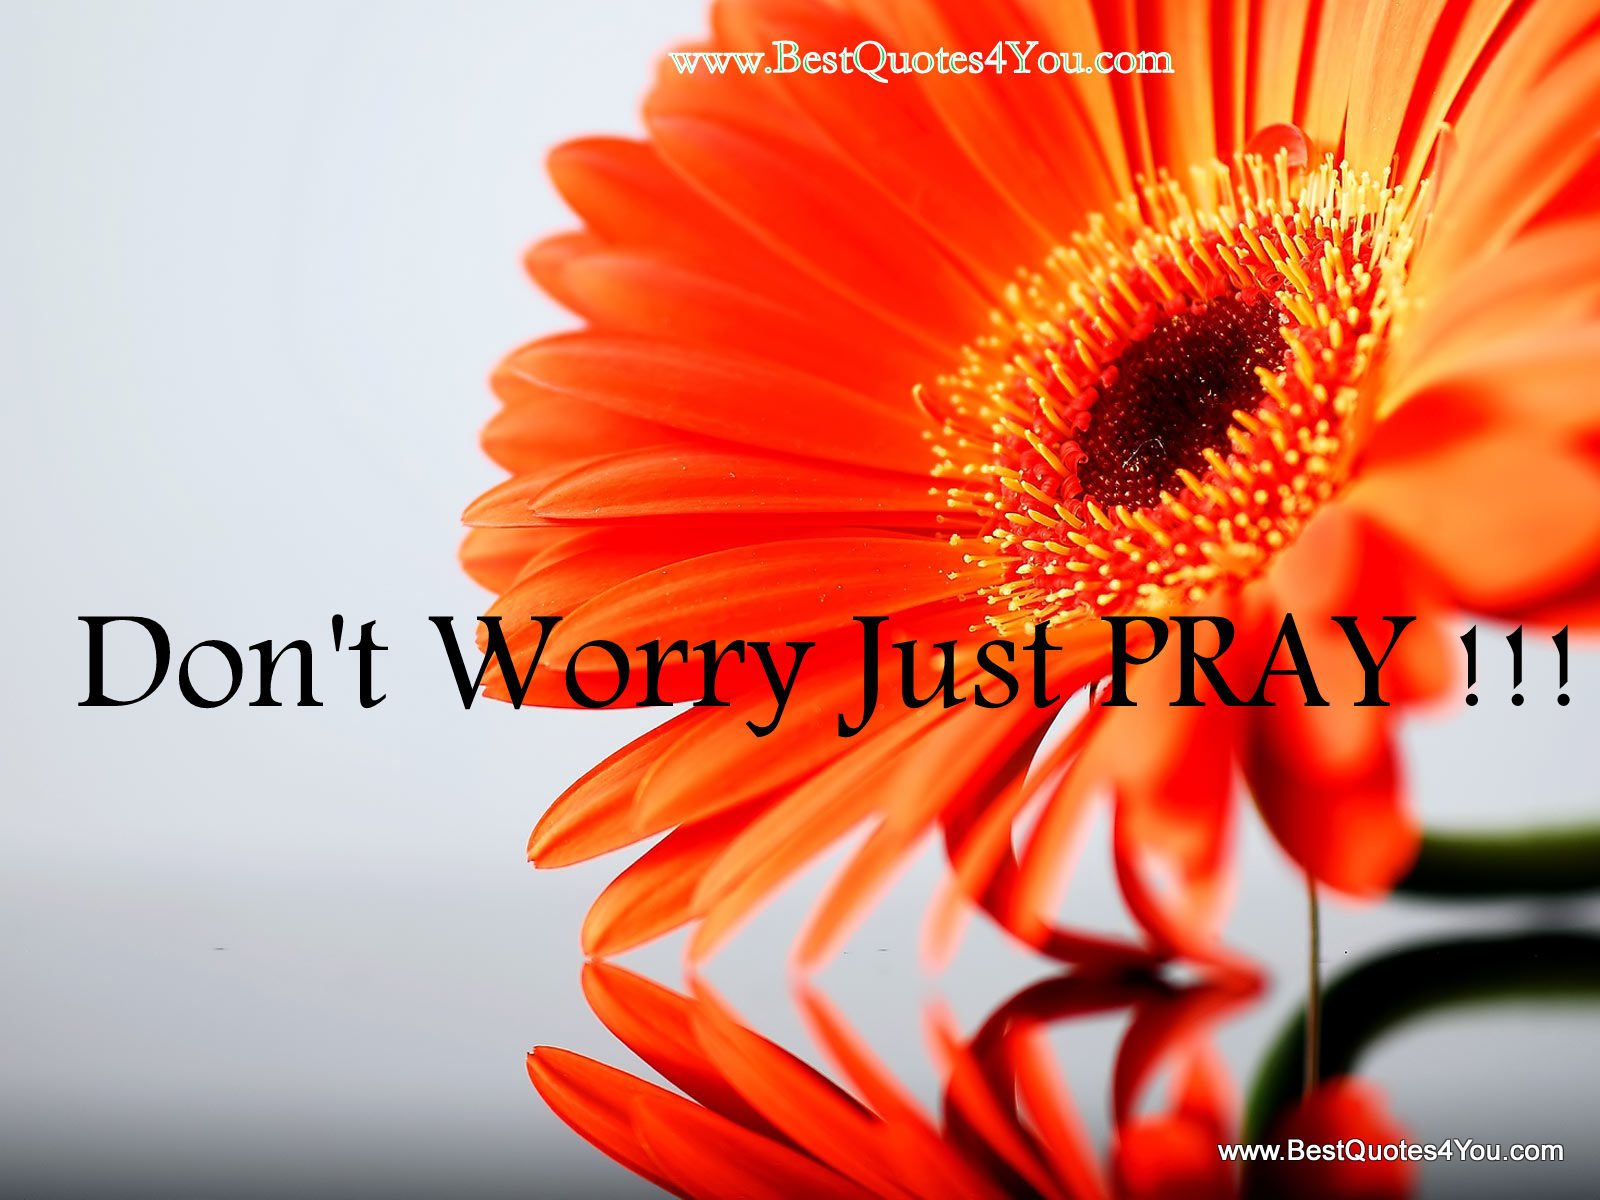 dont-worry-just-pray